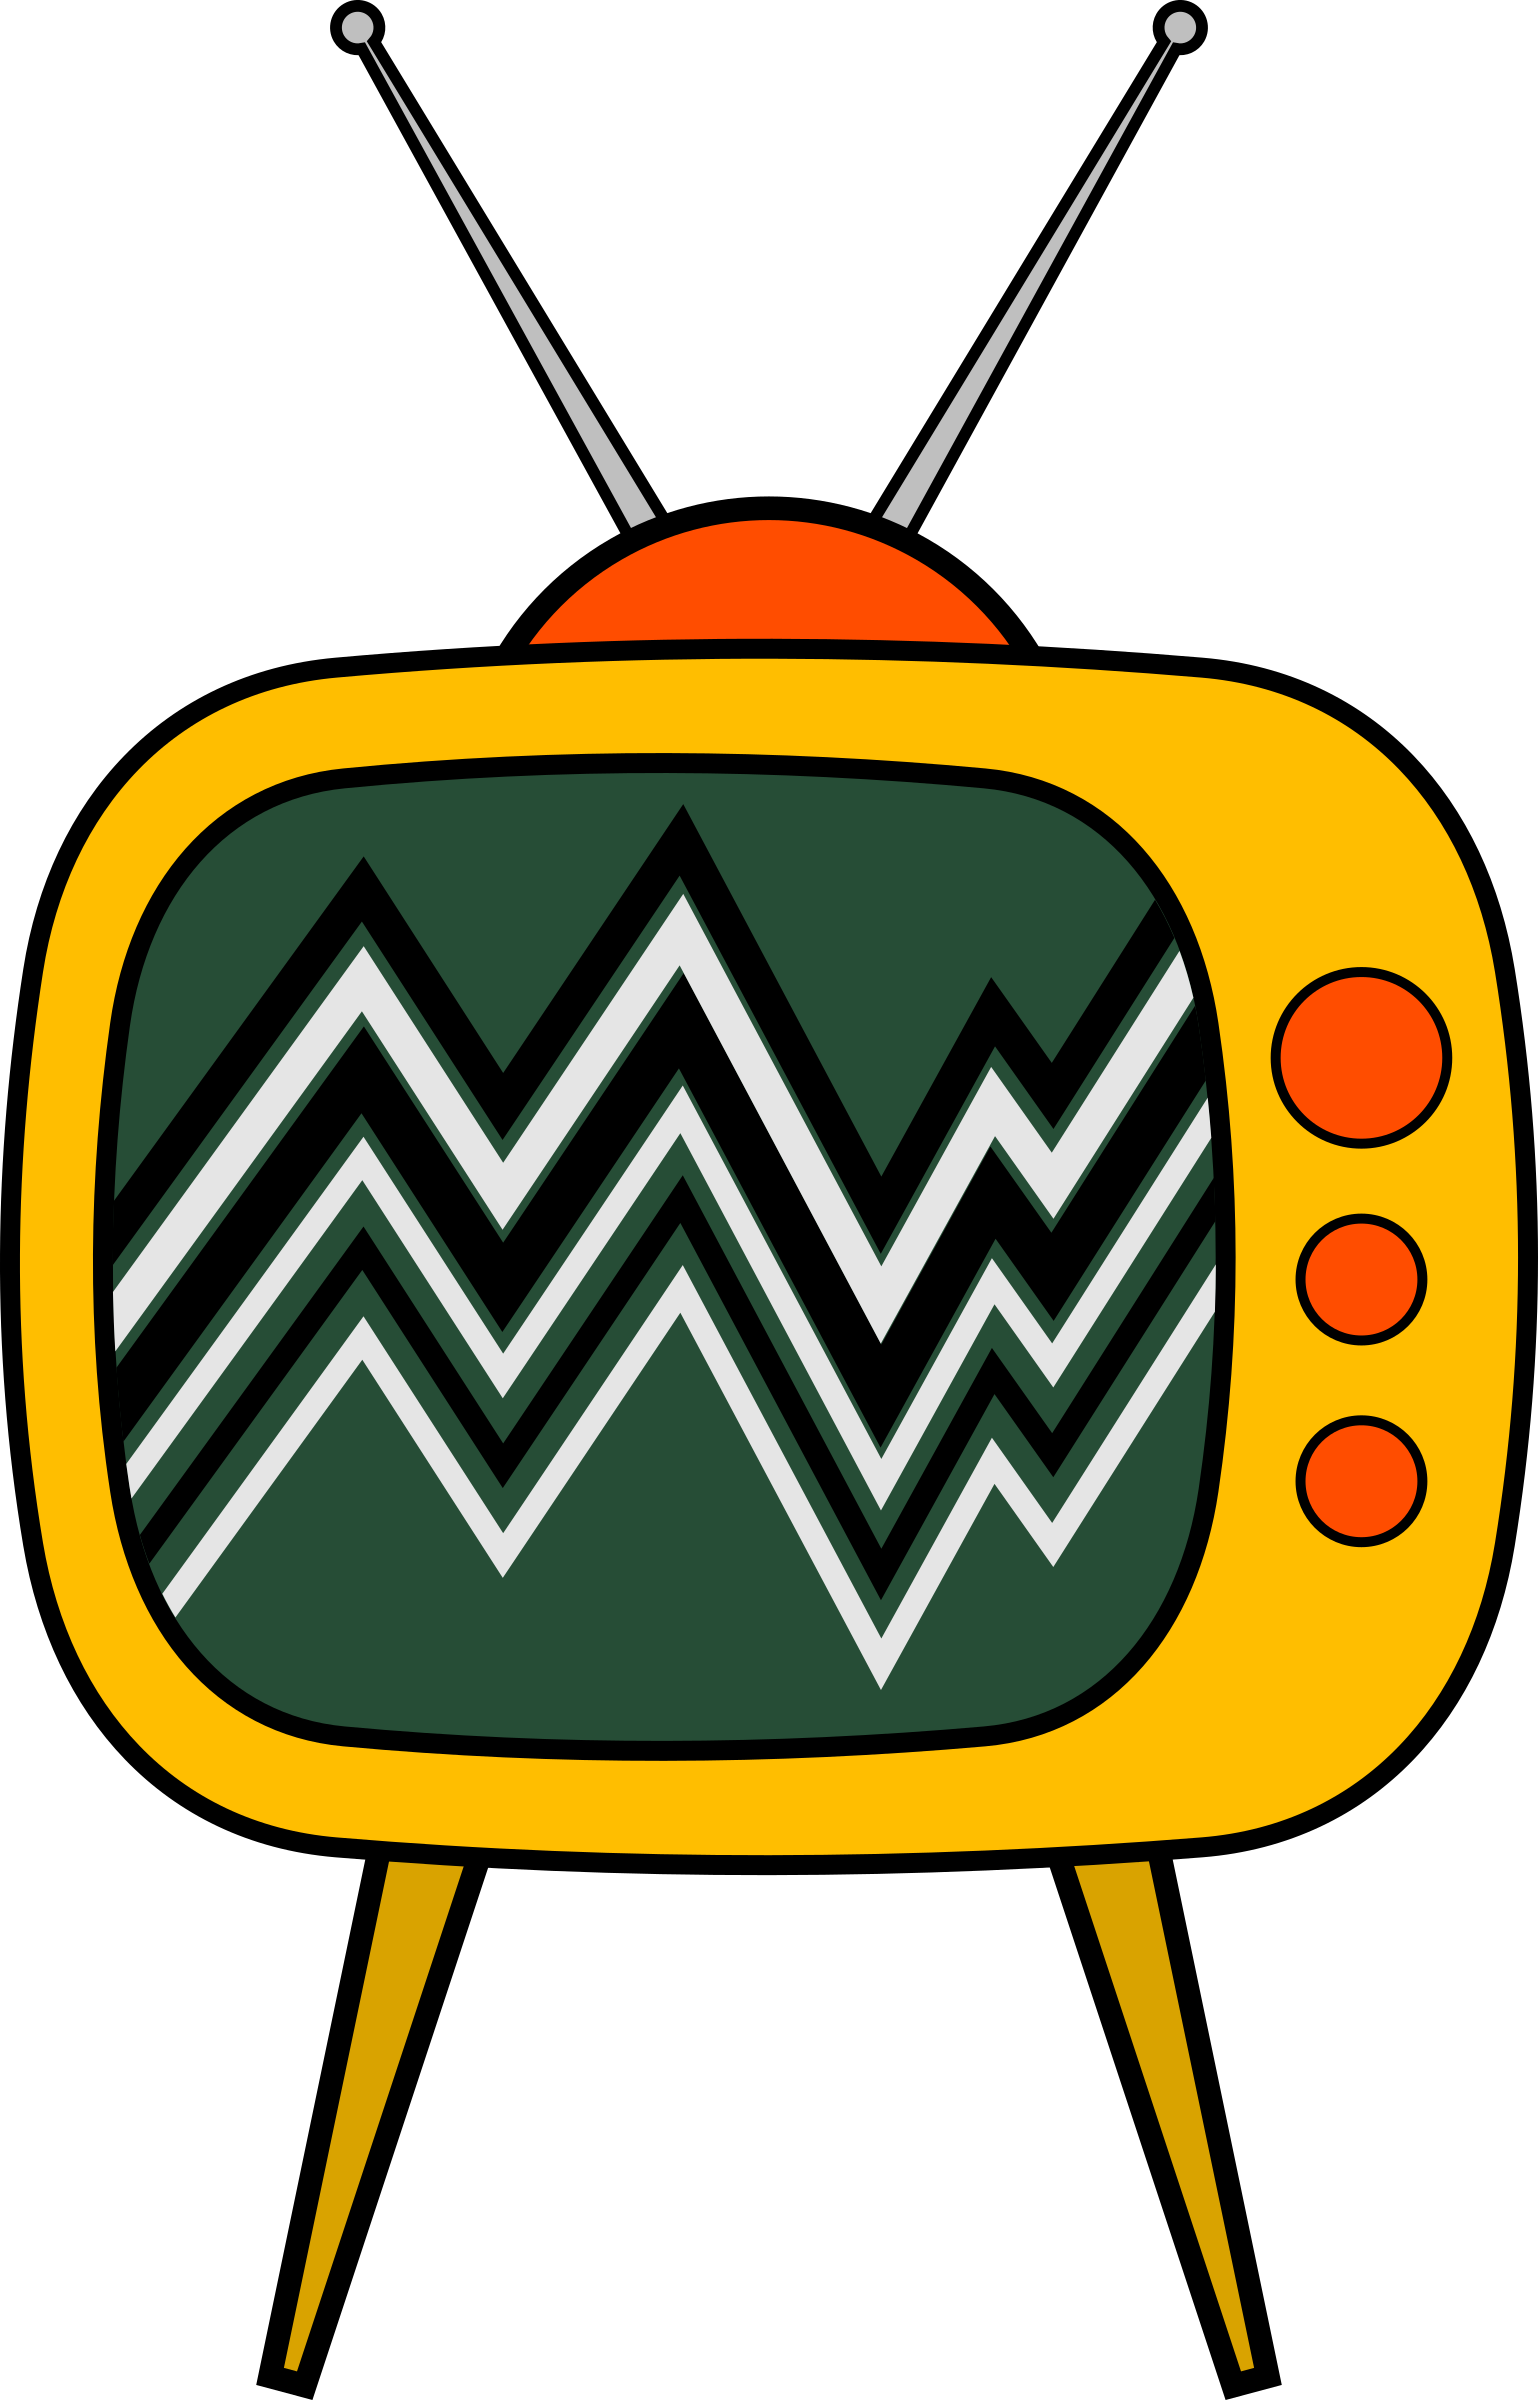 Old TV Cartoon by gustavorezende